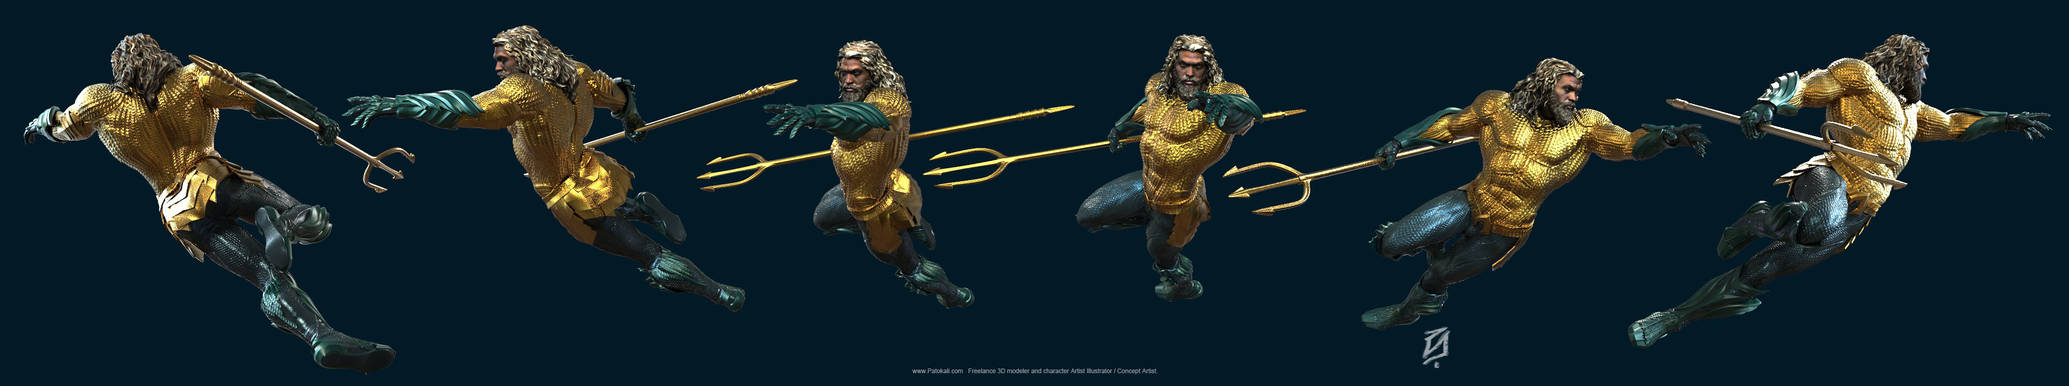 01-Aquaman-Pose2KS